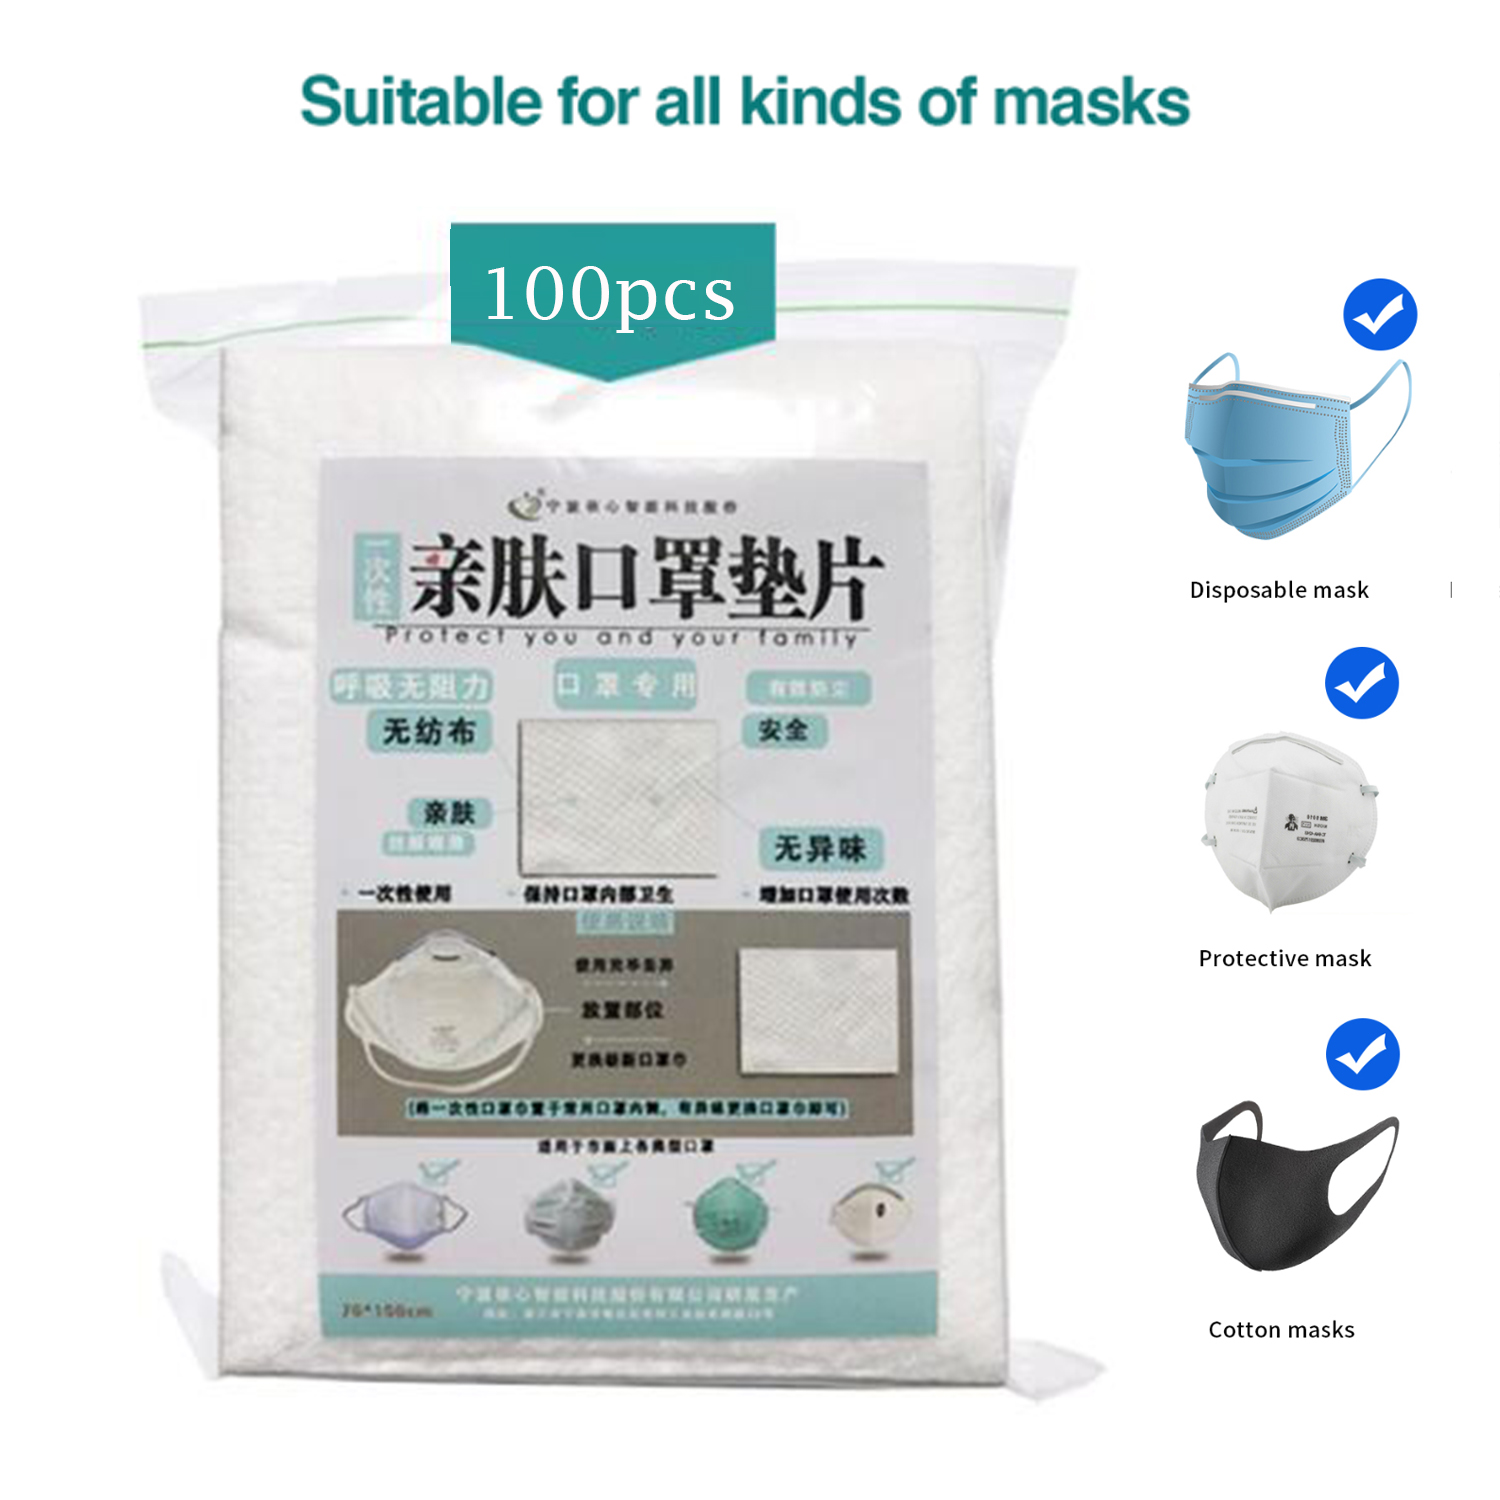 100pcs Disposable Face Masks Replacement Filter Pad For Kids Face Mouth Mask Respirator PM25 Suitable For All Kinds Of Mask